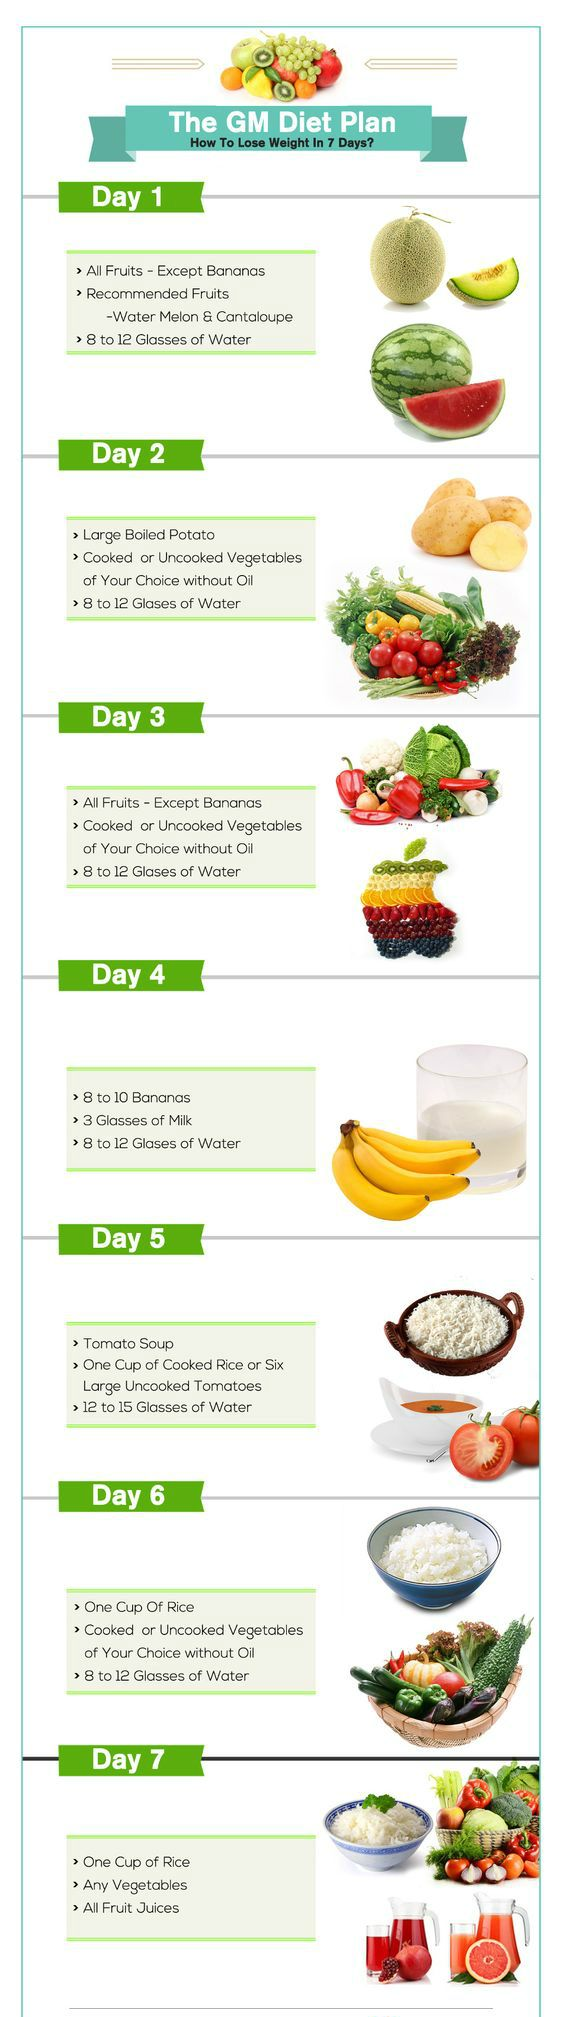 GM Diet Chart: Find the GM Diet Plan PDF Printable Version Free Download. General Motors diet aka GM Diet Chart helps you lose weight without exercise. You don't have to worry about any special workouts. Simply, follow the GM diet program and lose up to 10 pounds in a week safely.    #weightloss #loseweight #GMdiet #workout #health #recipes #motivation #lowcalorie #weightlossdiet